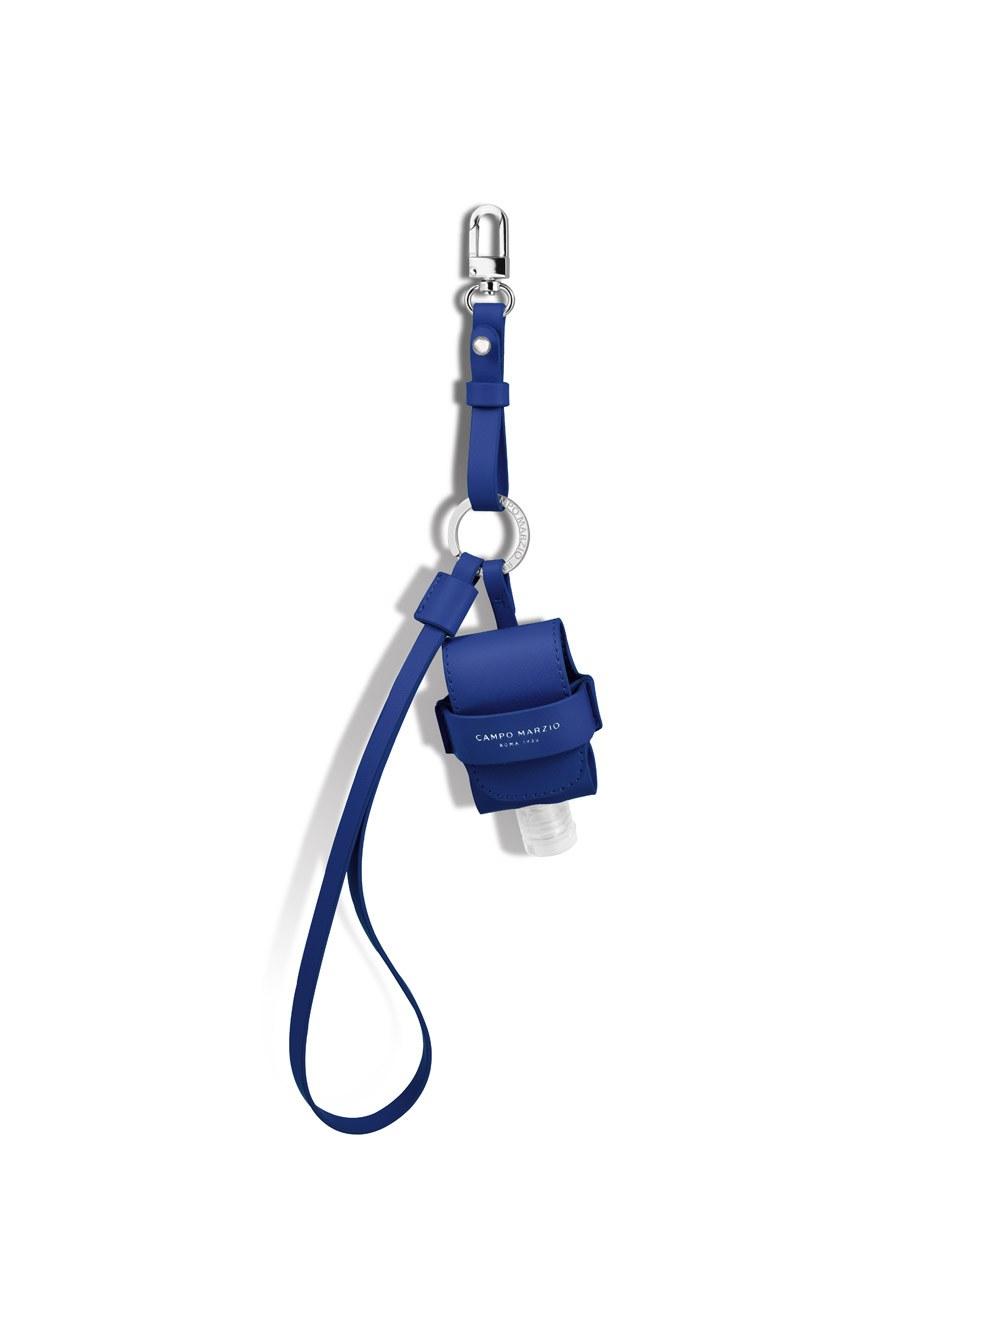 Keychain with Mini Pouch Dispenser - Blueberry